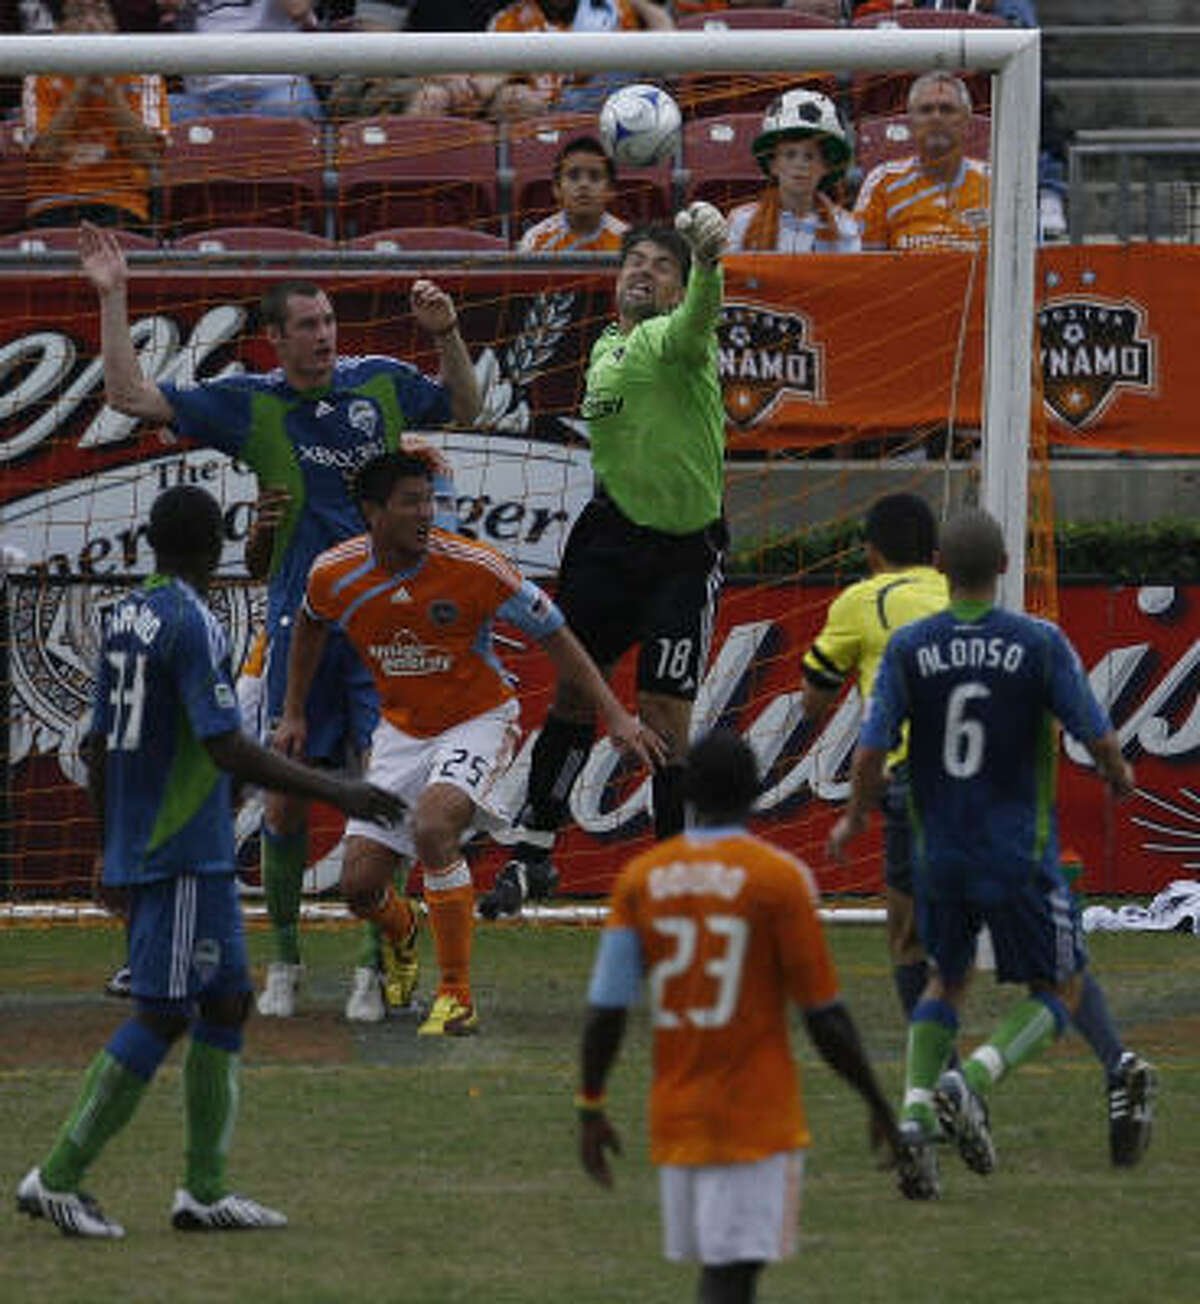 Dynamo goalkeeper Pat Onstad, who kept the Sounders scoreless for 210 minutes in the series, deflects a shot.